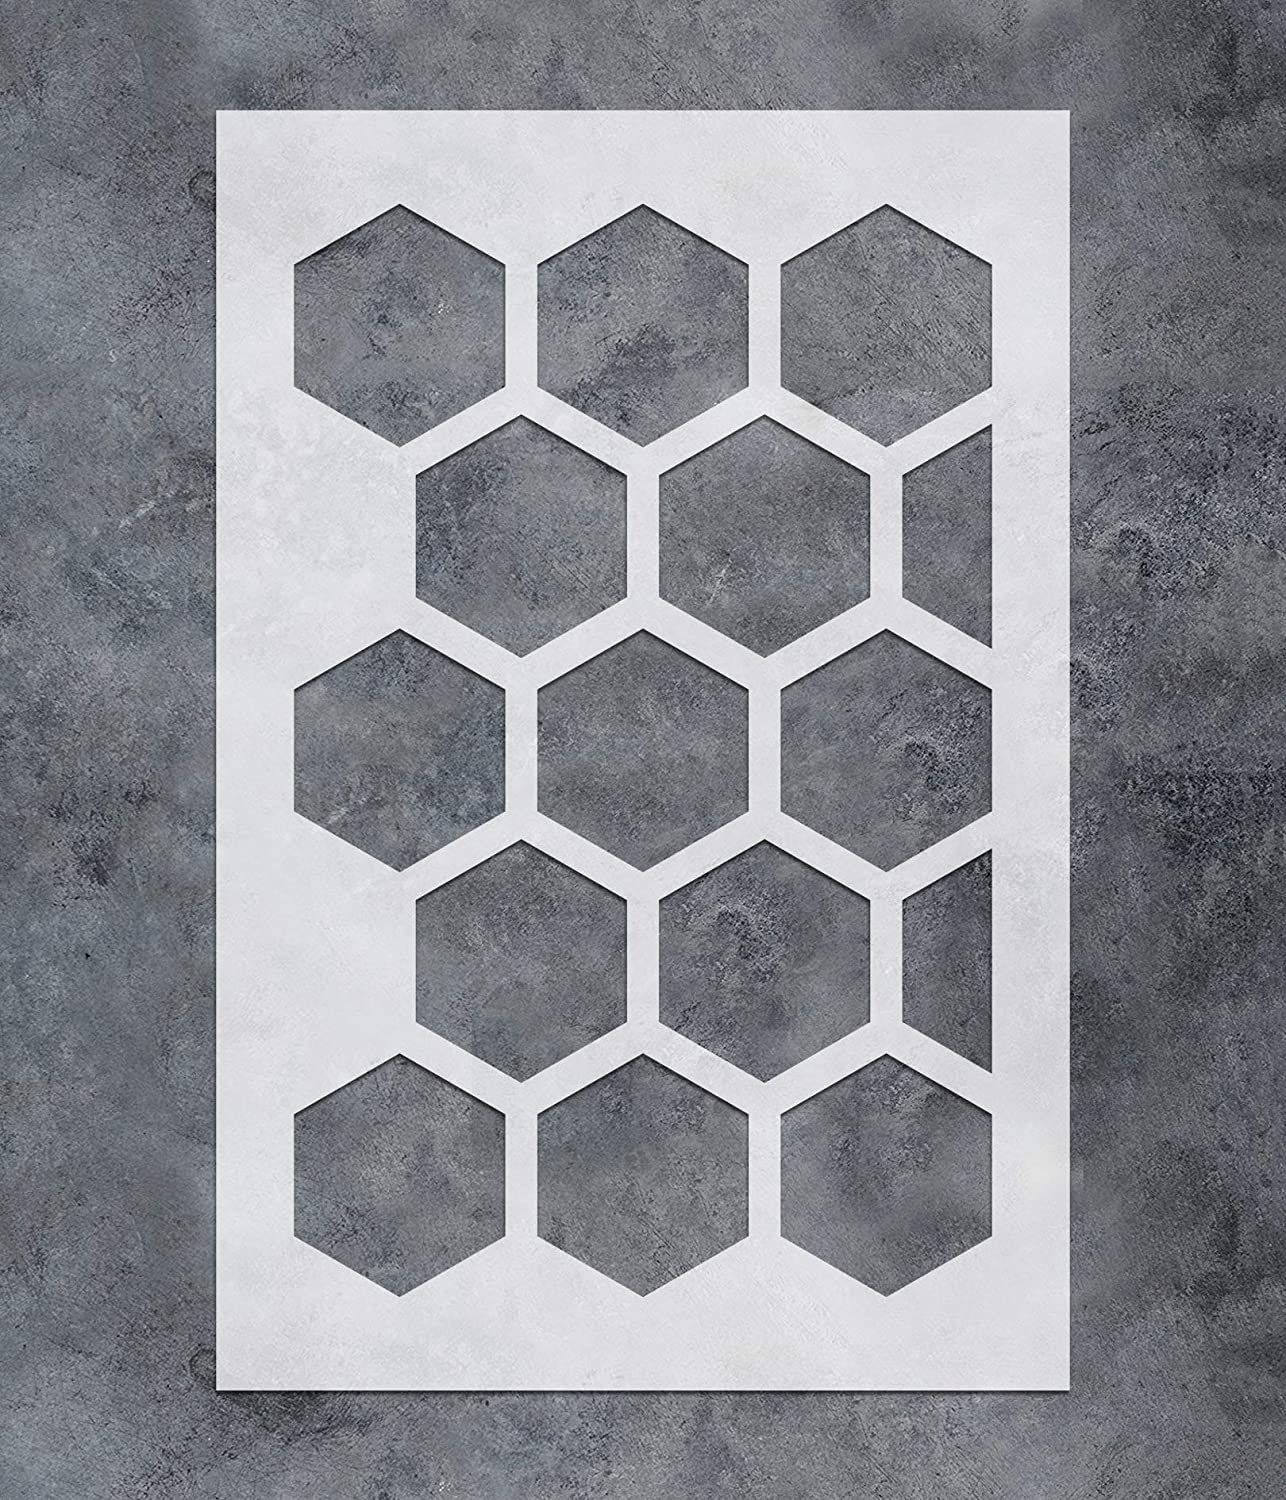 GSS Designs Large Hexagon Wall Stencil (16x24Inch) - Geometric Pattern Stencils for Painting on Wood Wall Furniture - Reusable Herringbone Stencil Template for Wall Decor (SL-107)